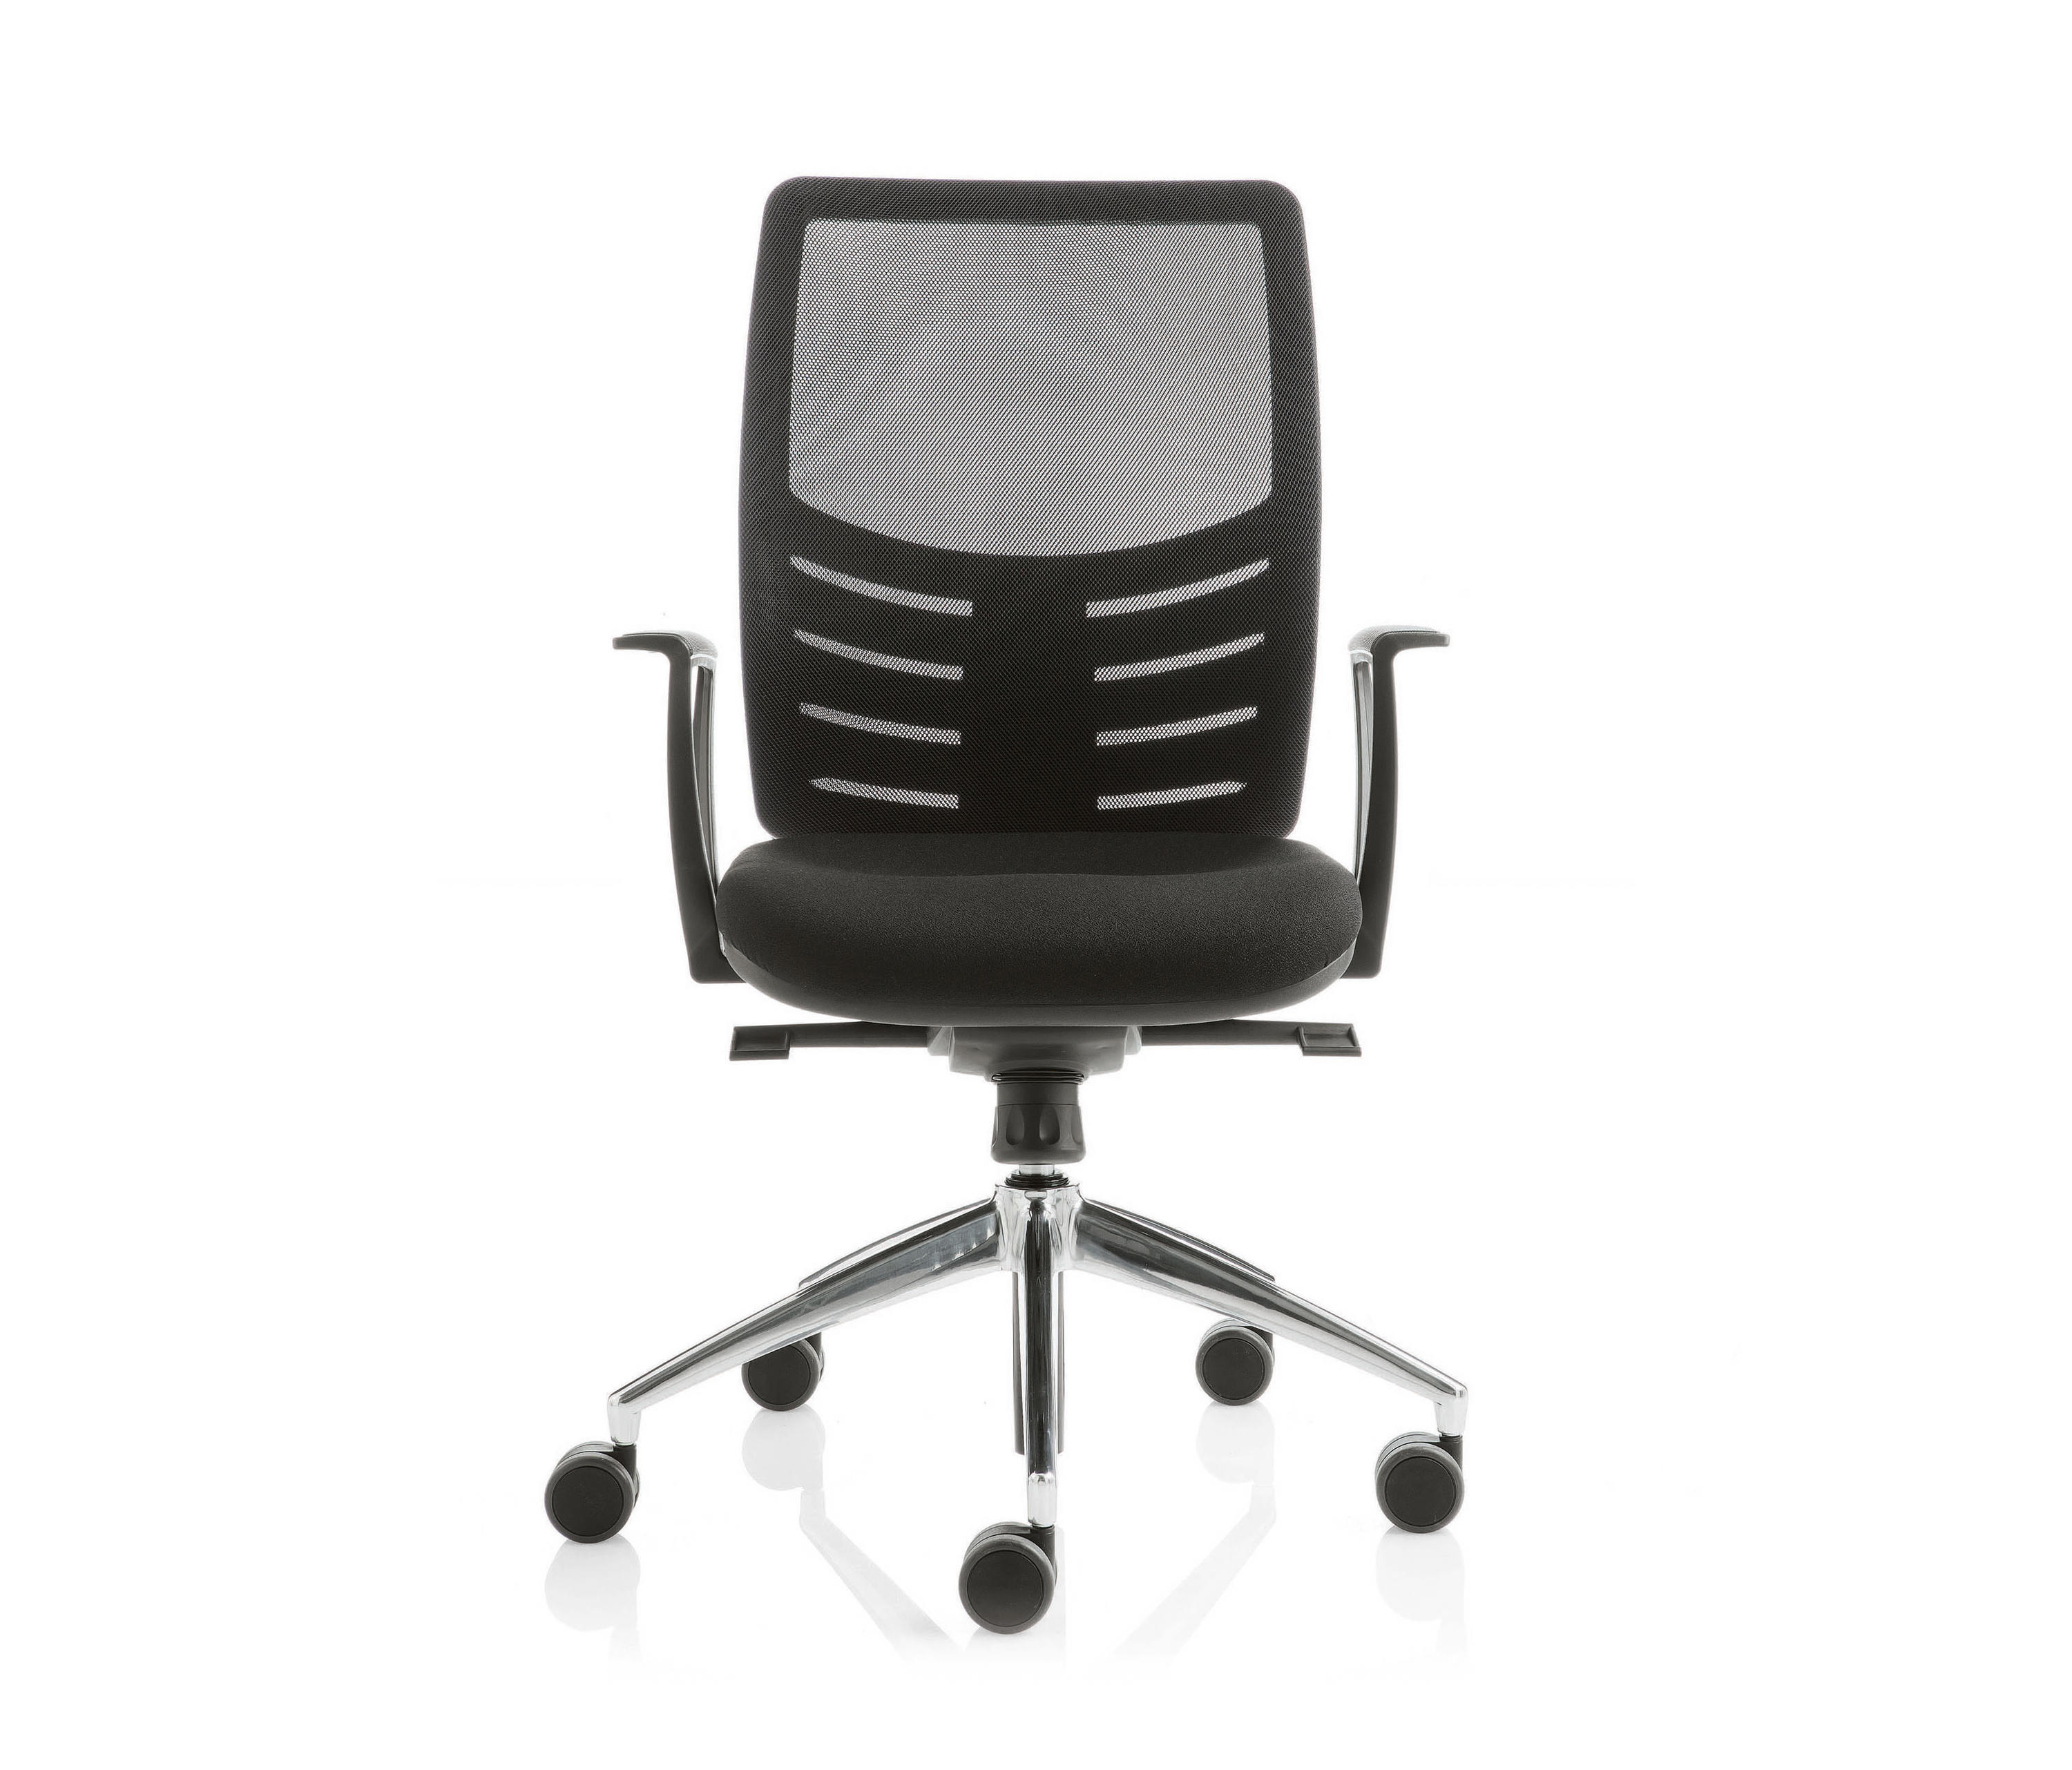 swivel chair em portugues chairs and table rentals 46 management from emmegi architonic